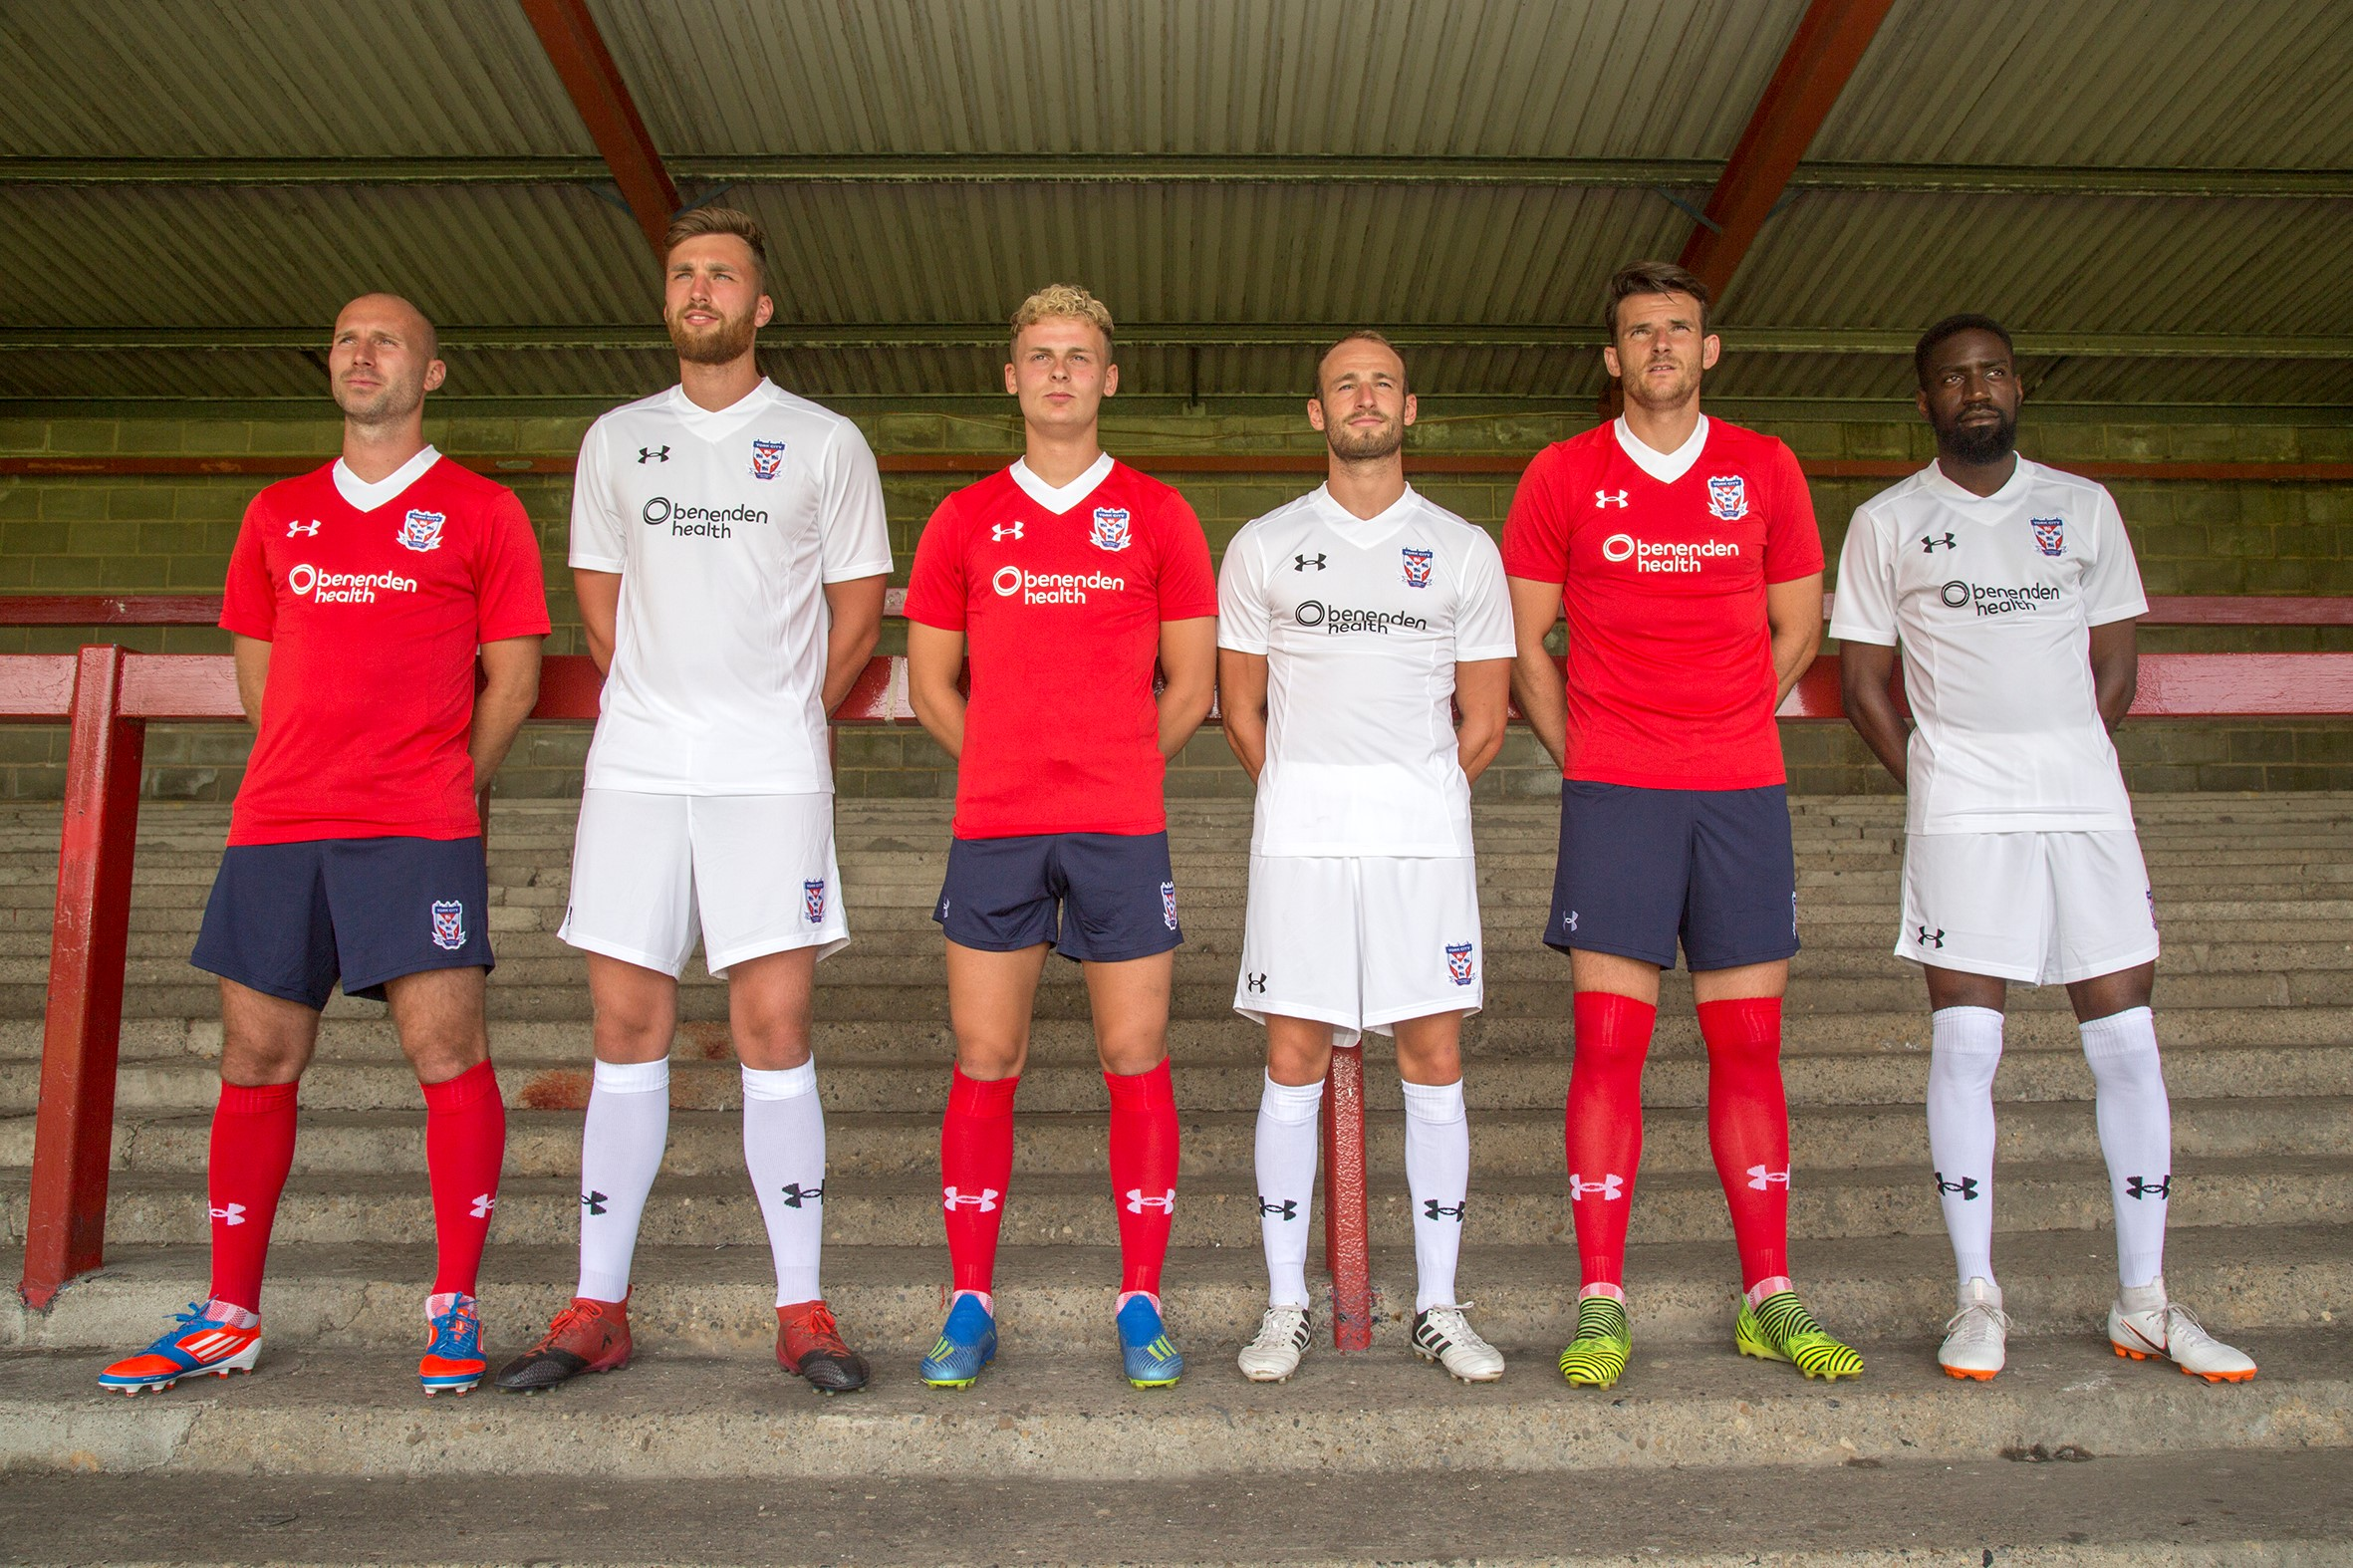 e5b055d9300 New 'Under Armour' kit unveiled | York City Football Club